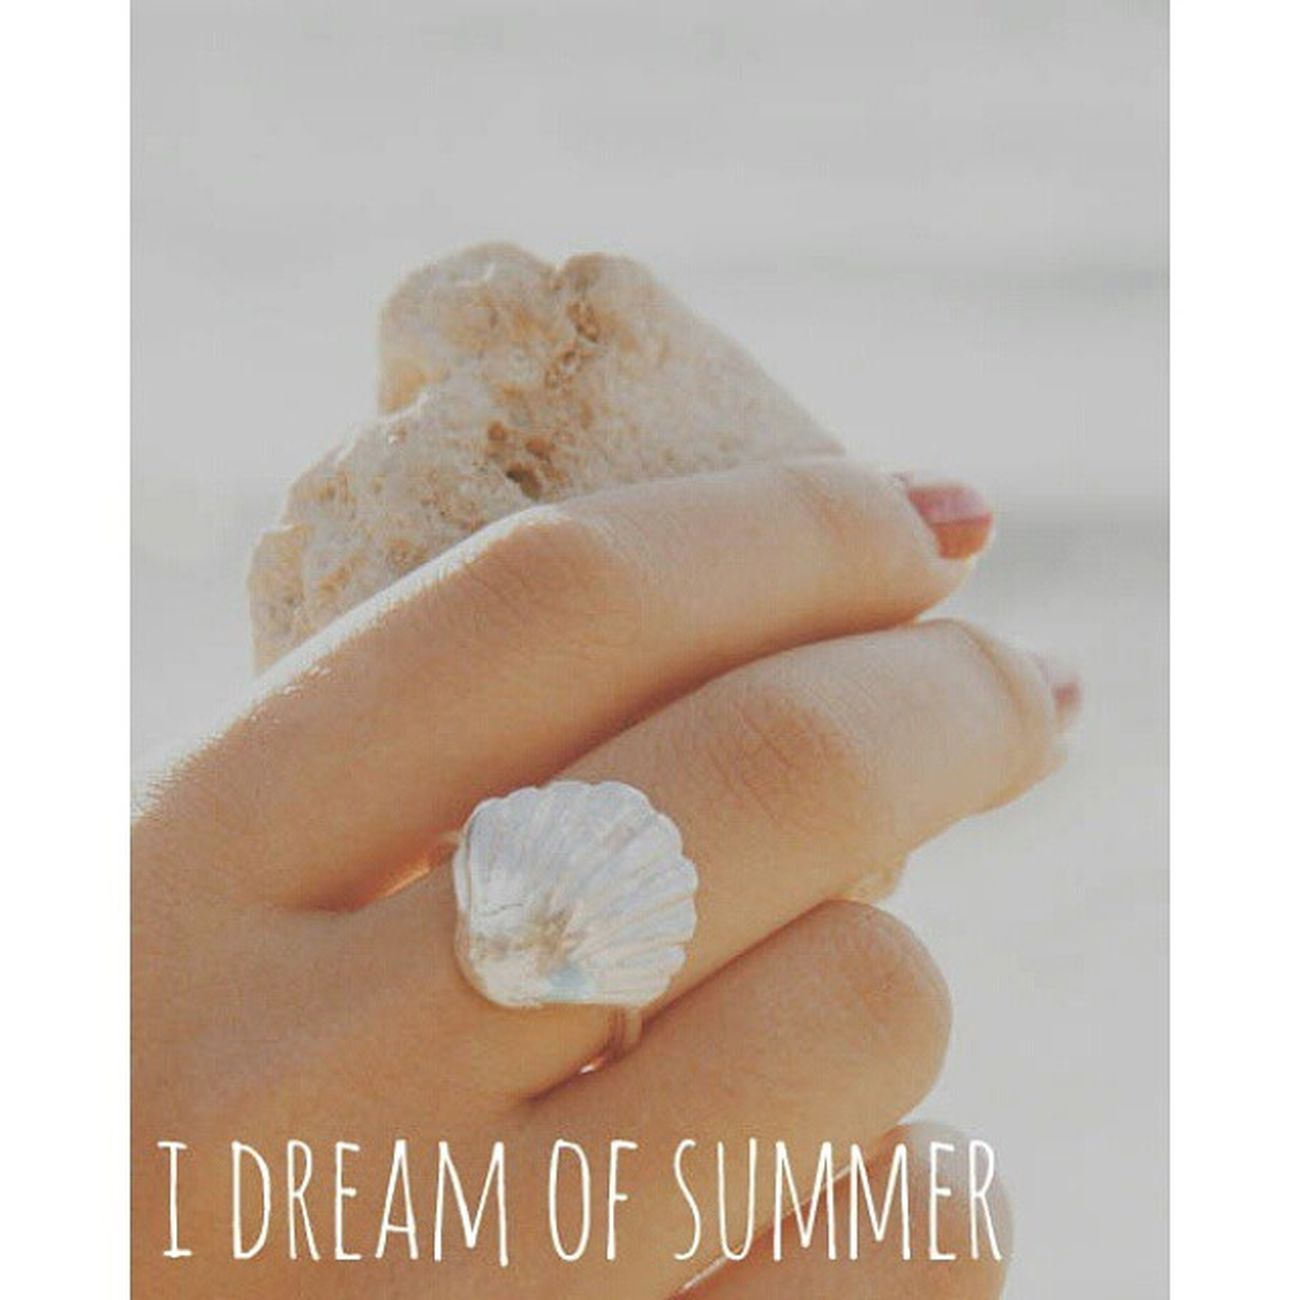 Dreaming of Summer ... By Kaleimaeole , Etsy